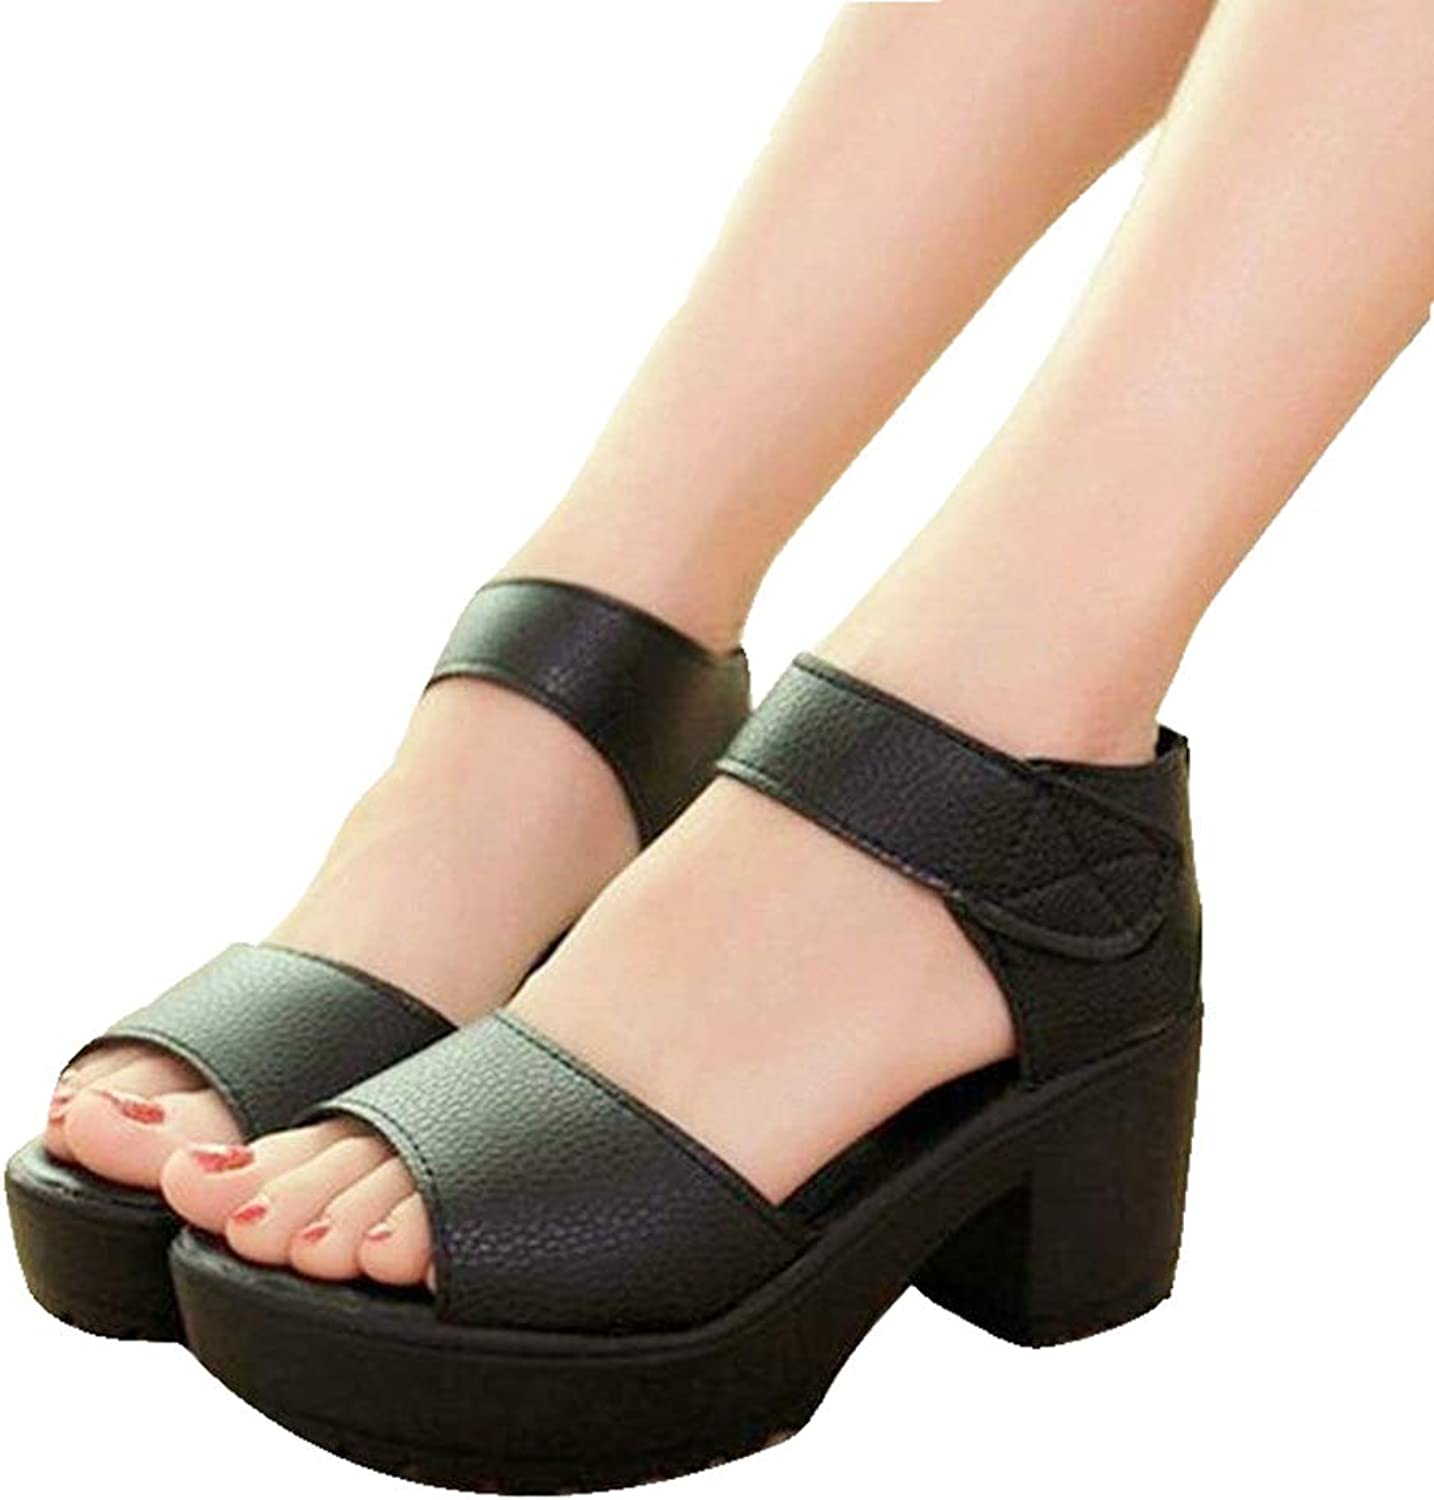 York Zhu Summer Wedge Sandals for Women Platform Strappy Sandal Mid Heels Casual shoes